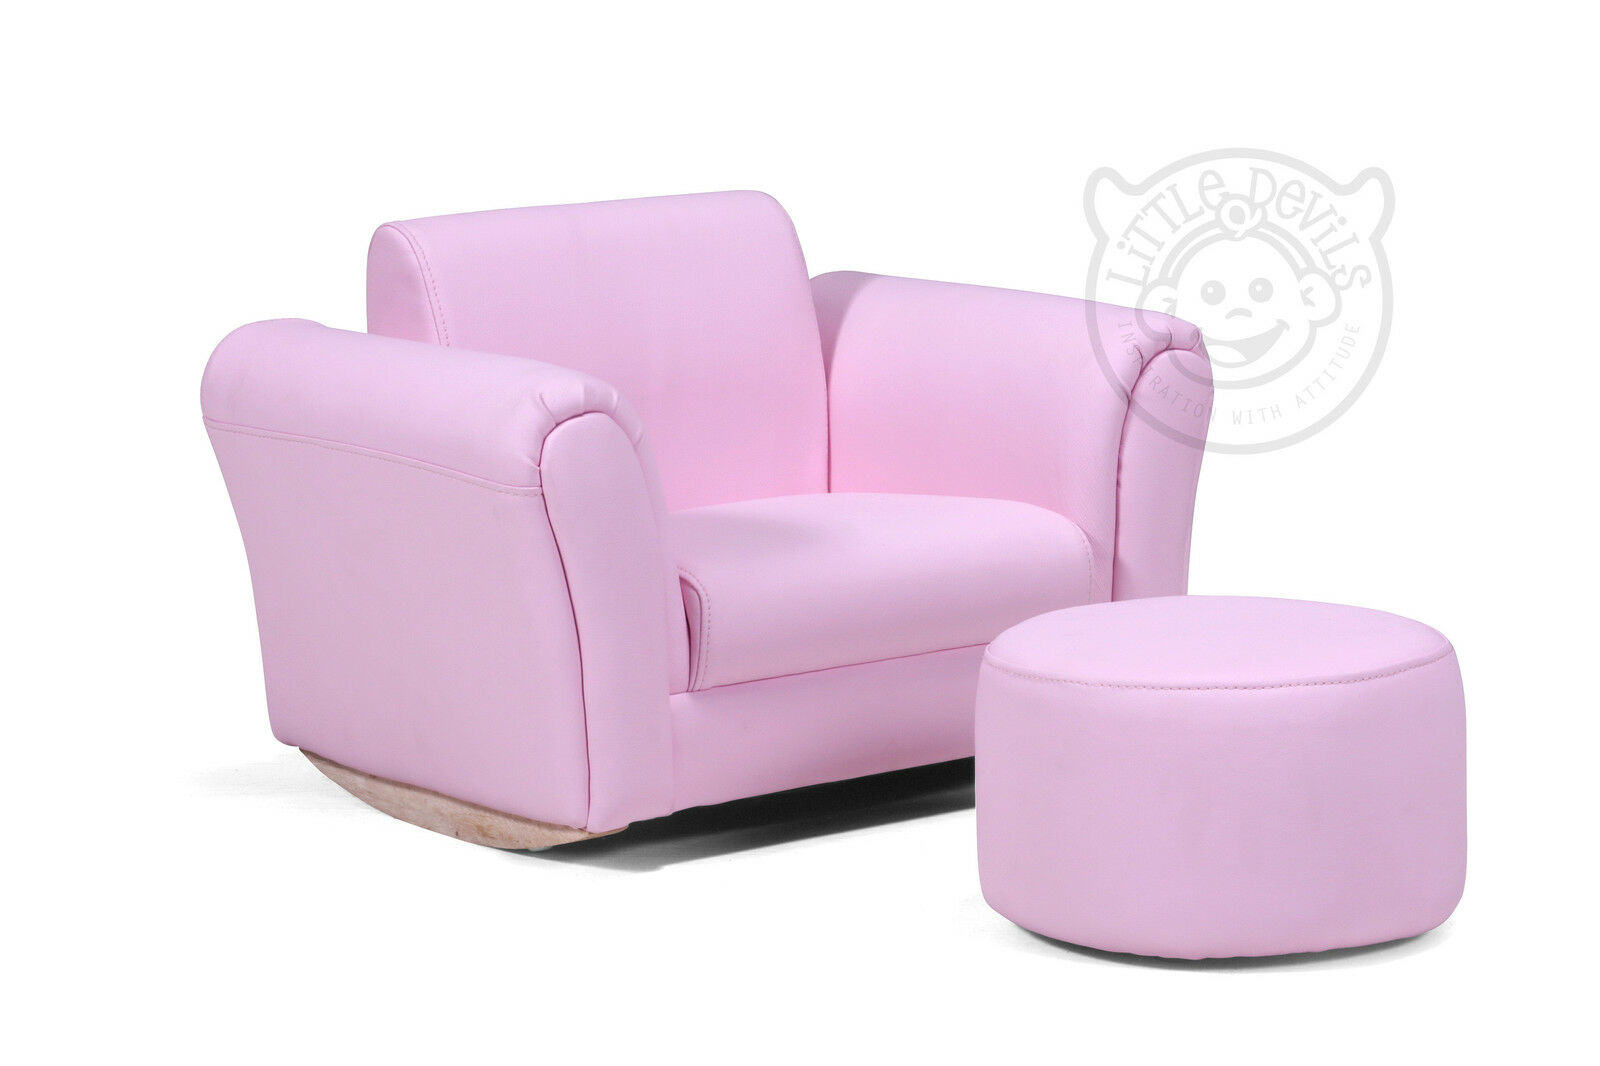 Pink lazybones kids rocking chair seat armchair sofa for for Toddler leather chair